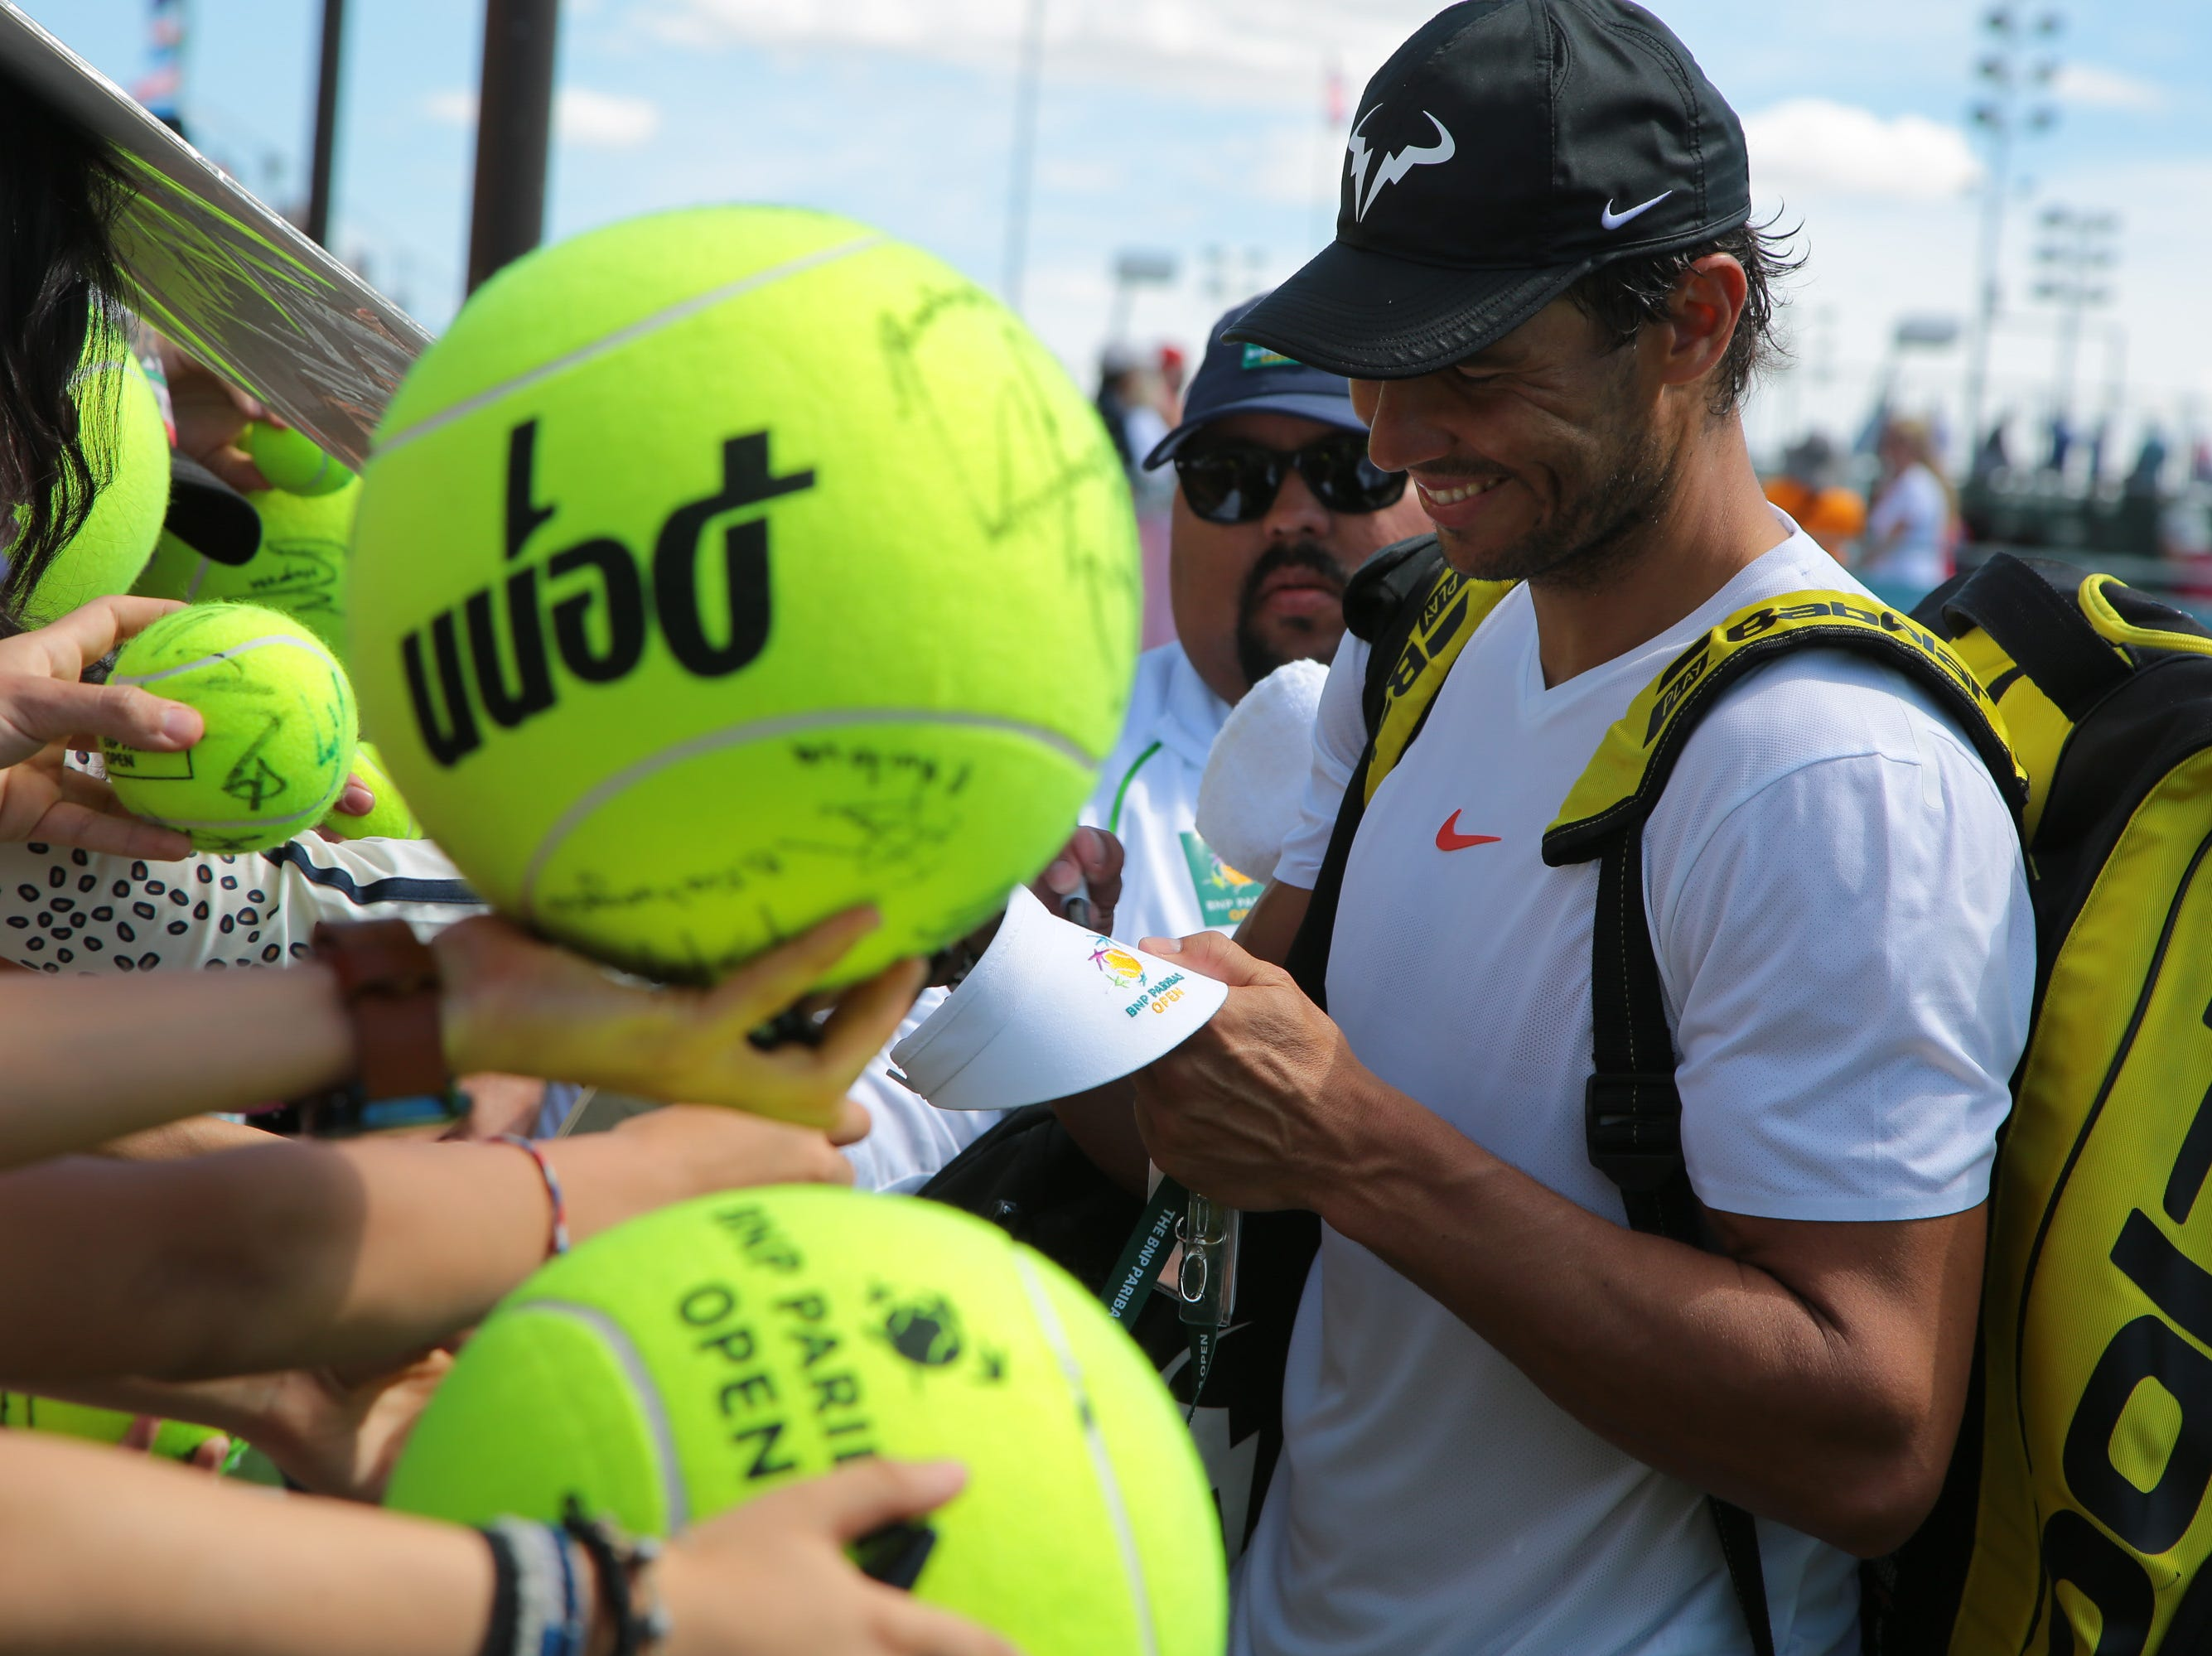 Rafael Nadal signs autographs for fans after practicing at the BNP Paribas Open, Indian Wells, Calif., Thursday, March 7, 2019.